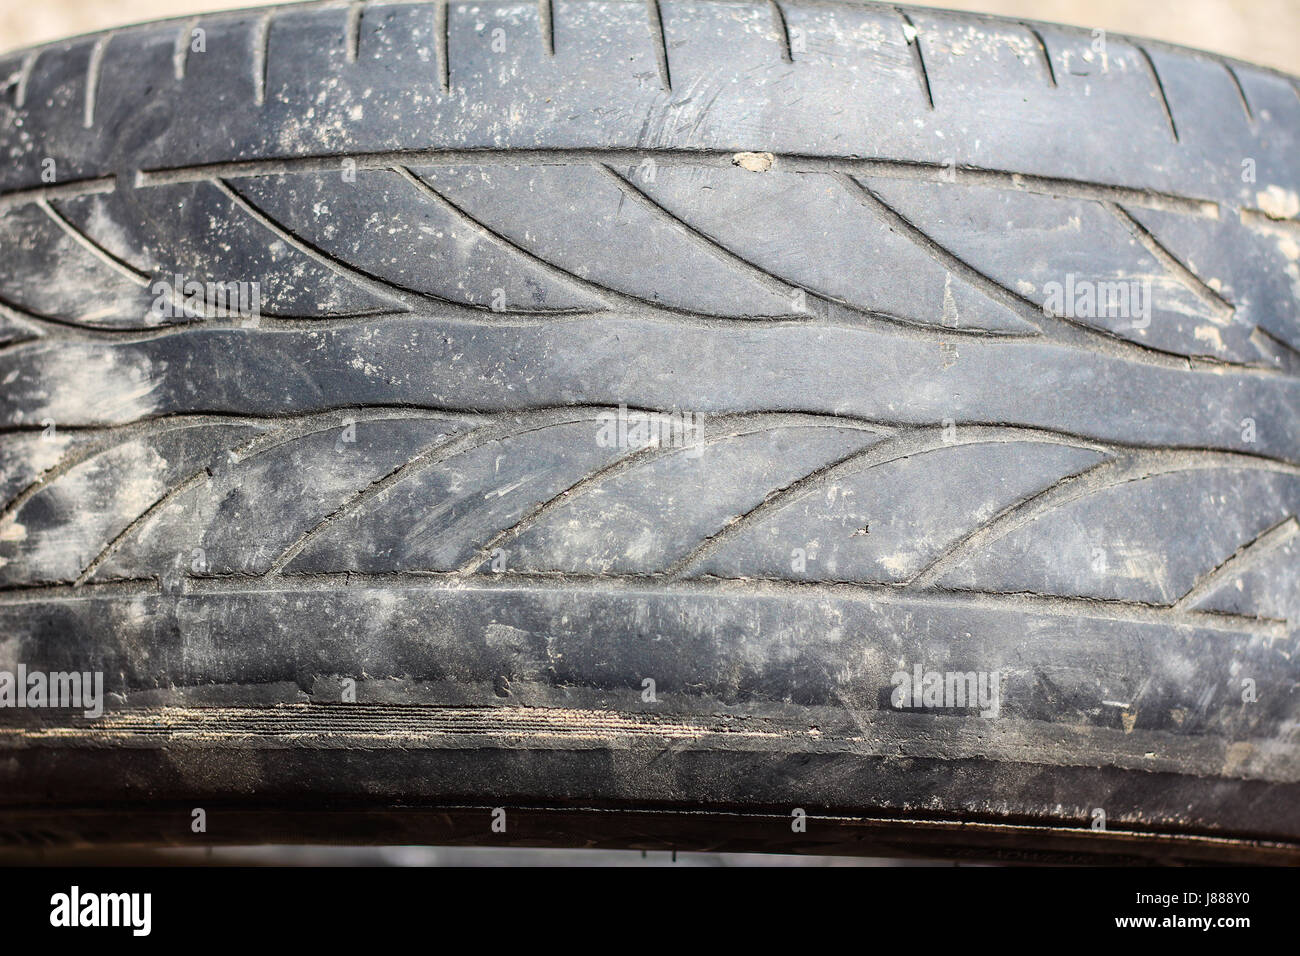 Old worn car tires on a gray background - Stock Image